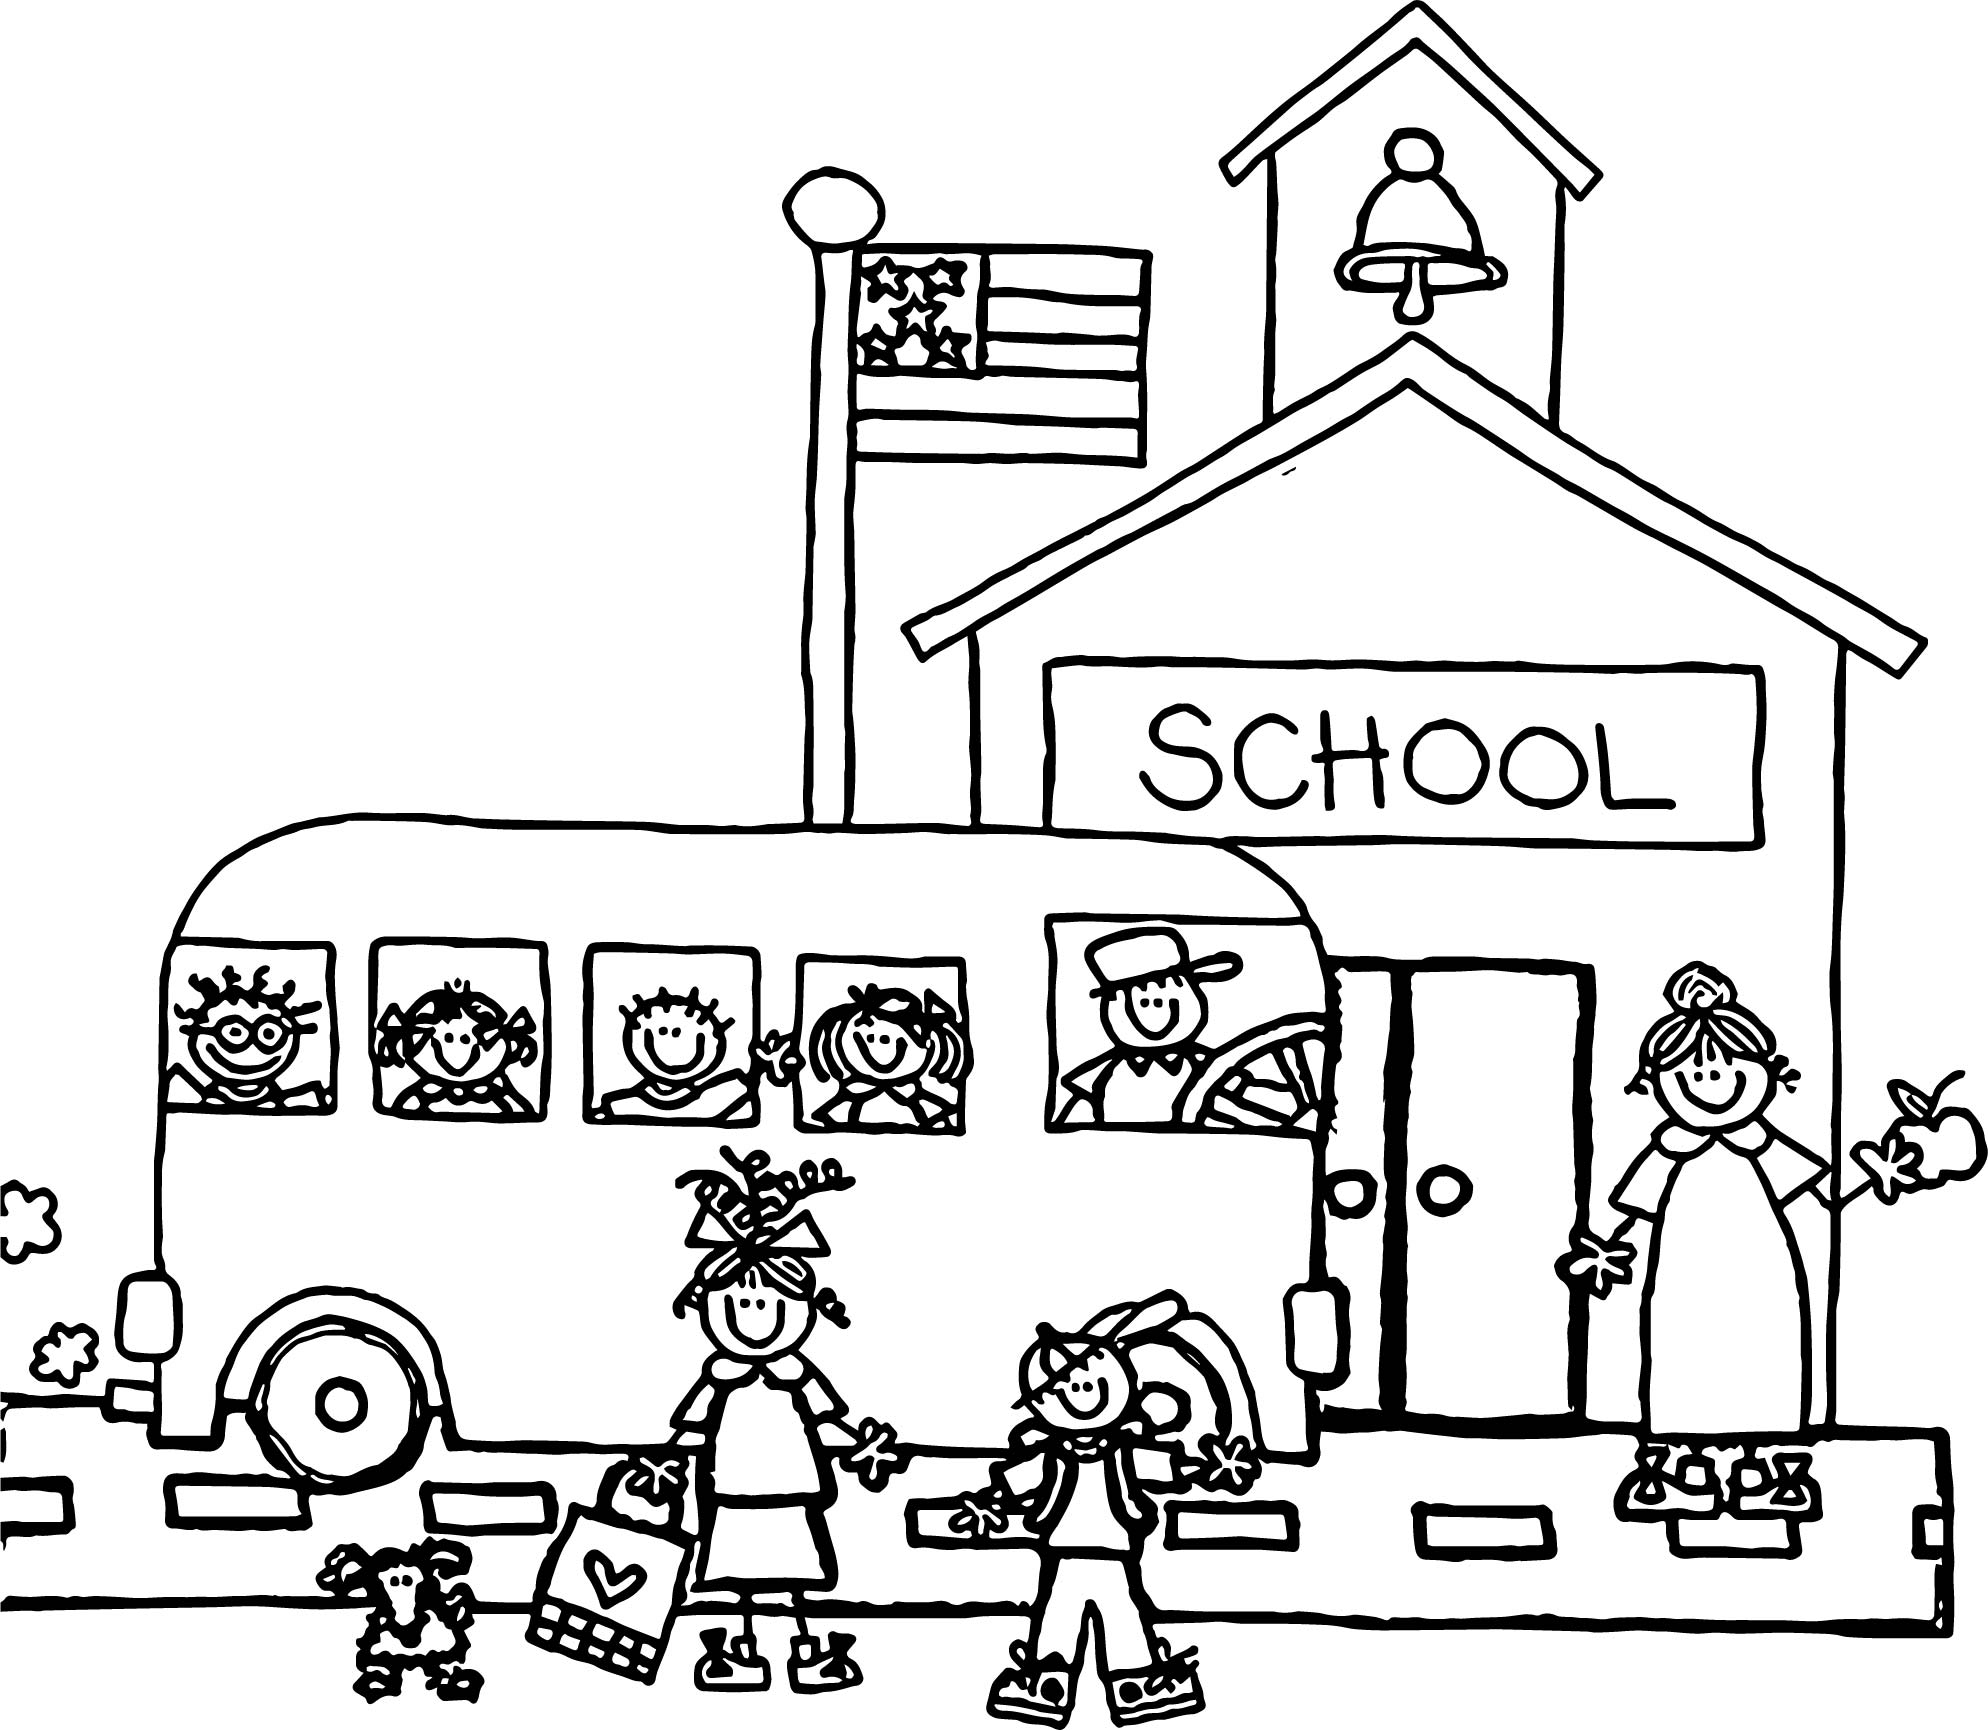 We Help At School Coloring Page Coloring Pages